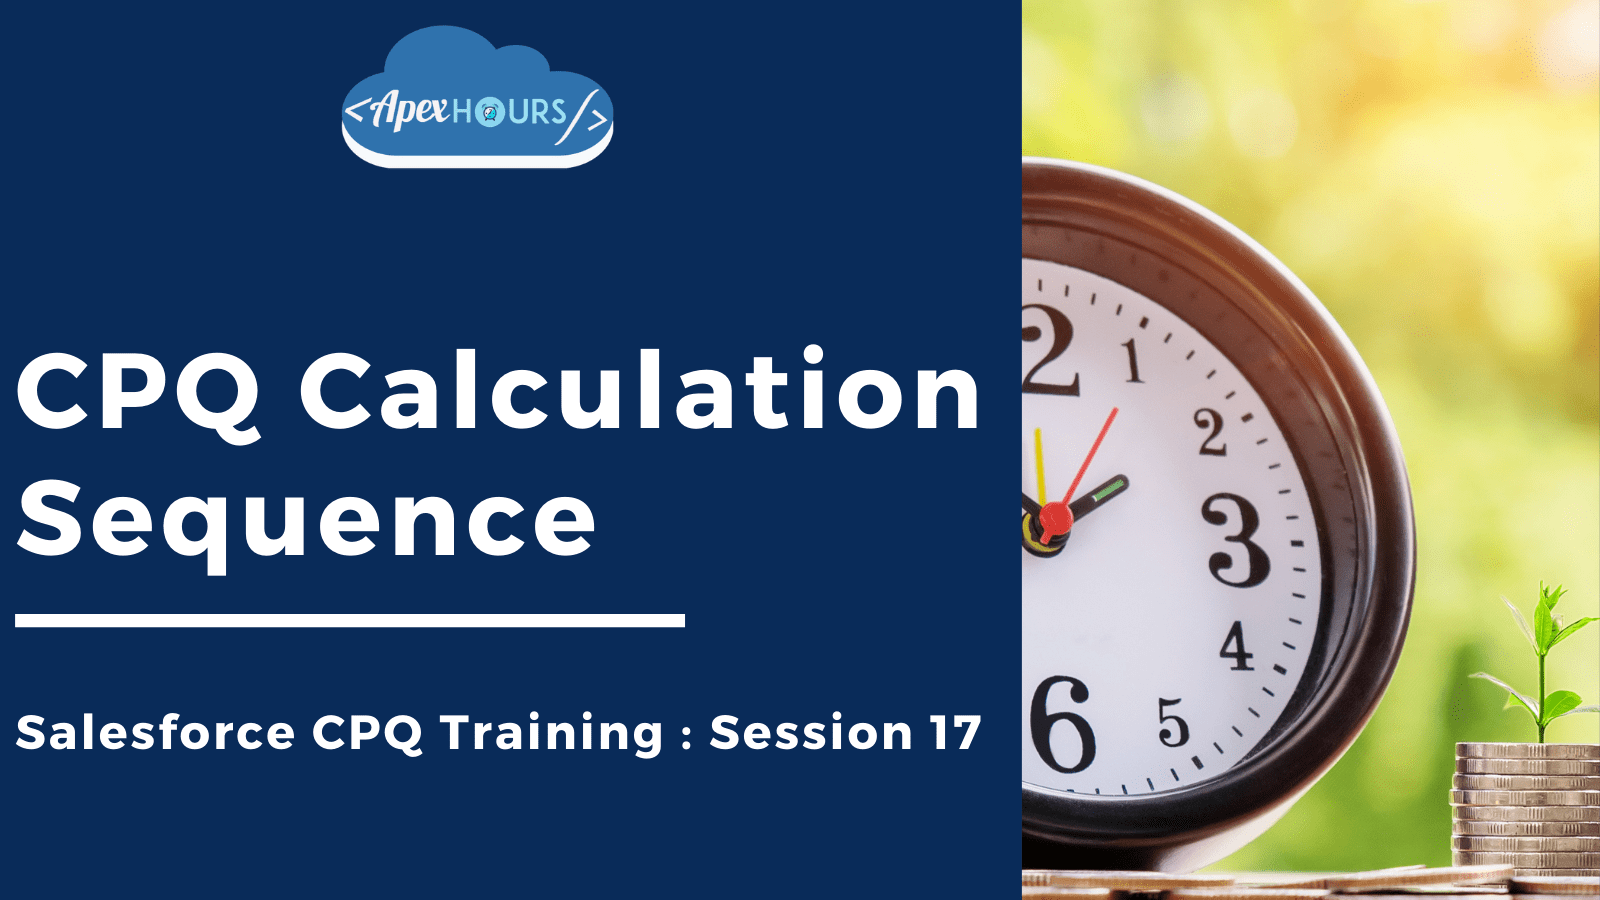 CPQ Calculation Sequence